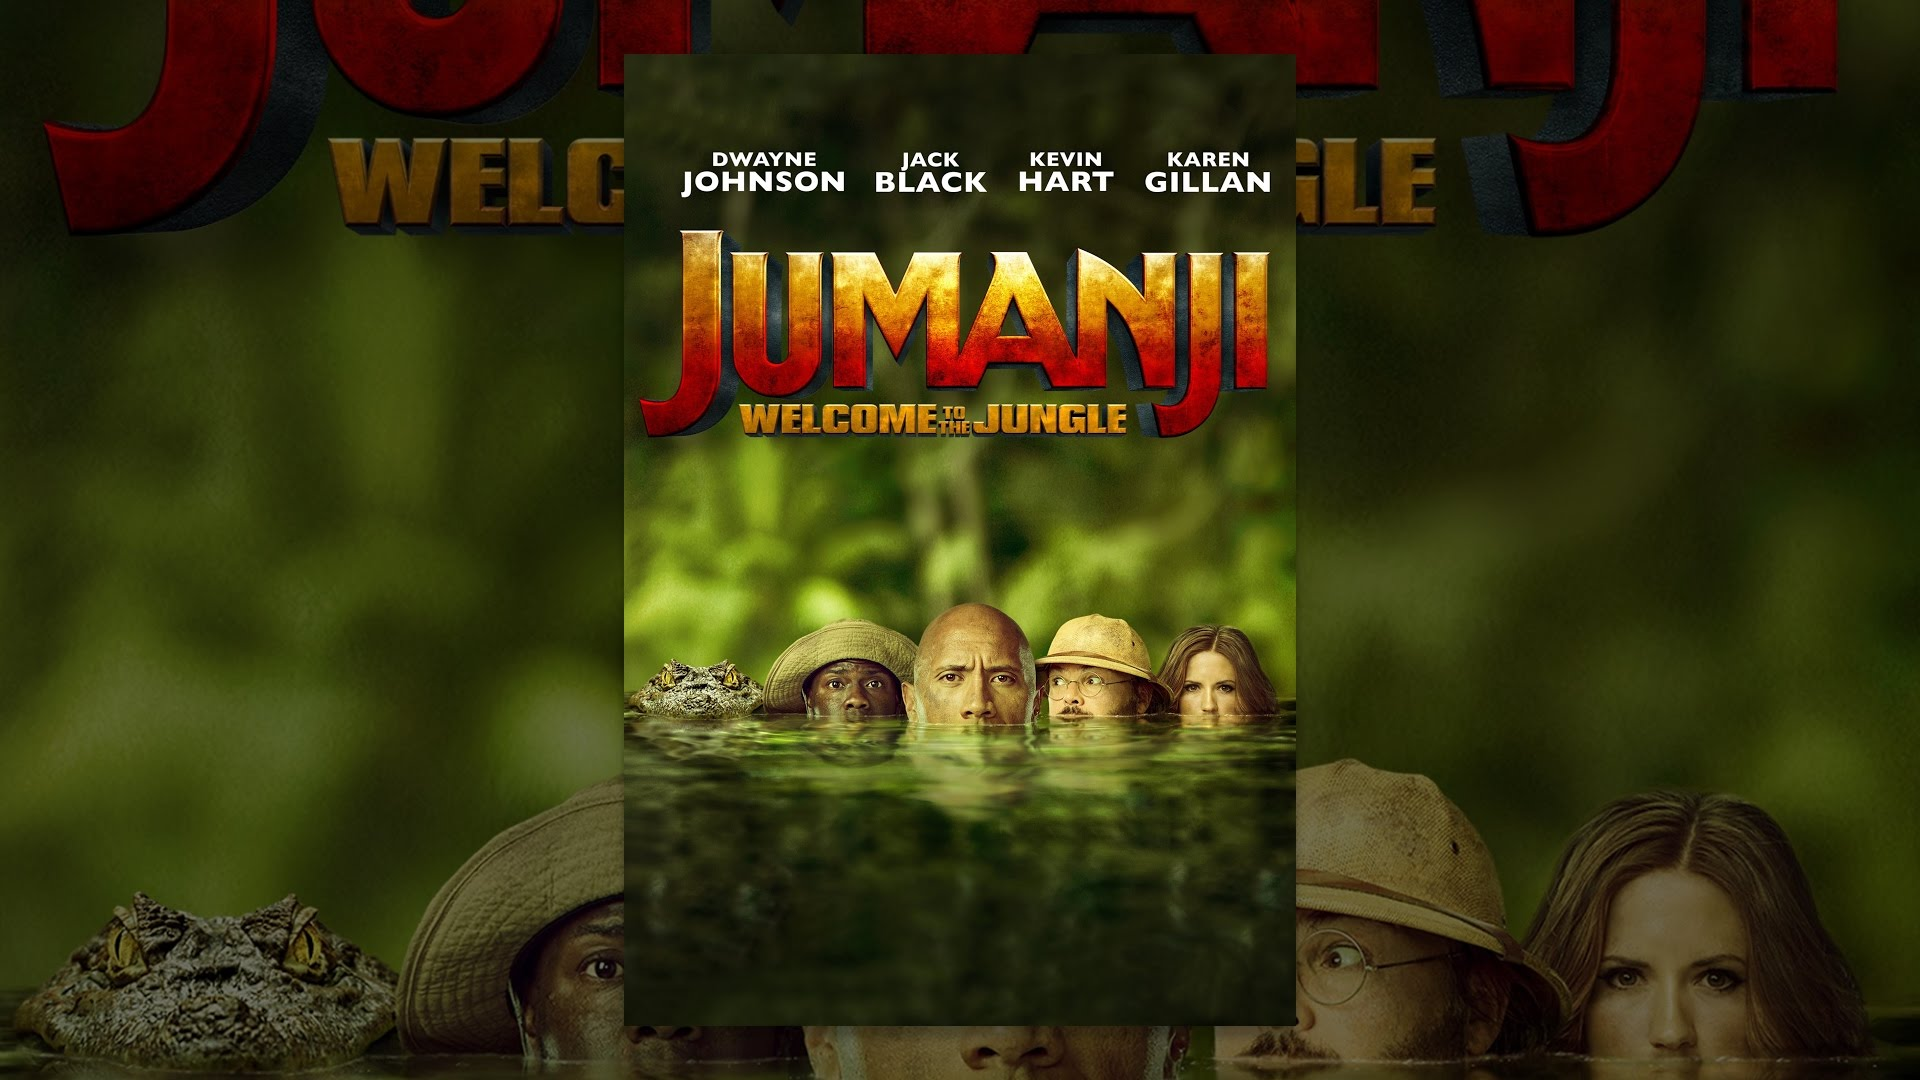 Jumanji, Jewell among this weeks new movies